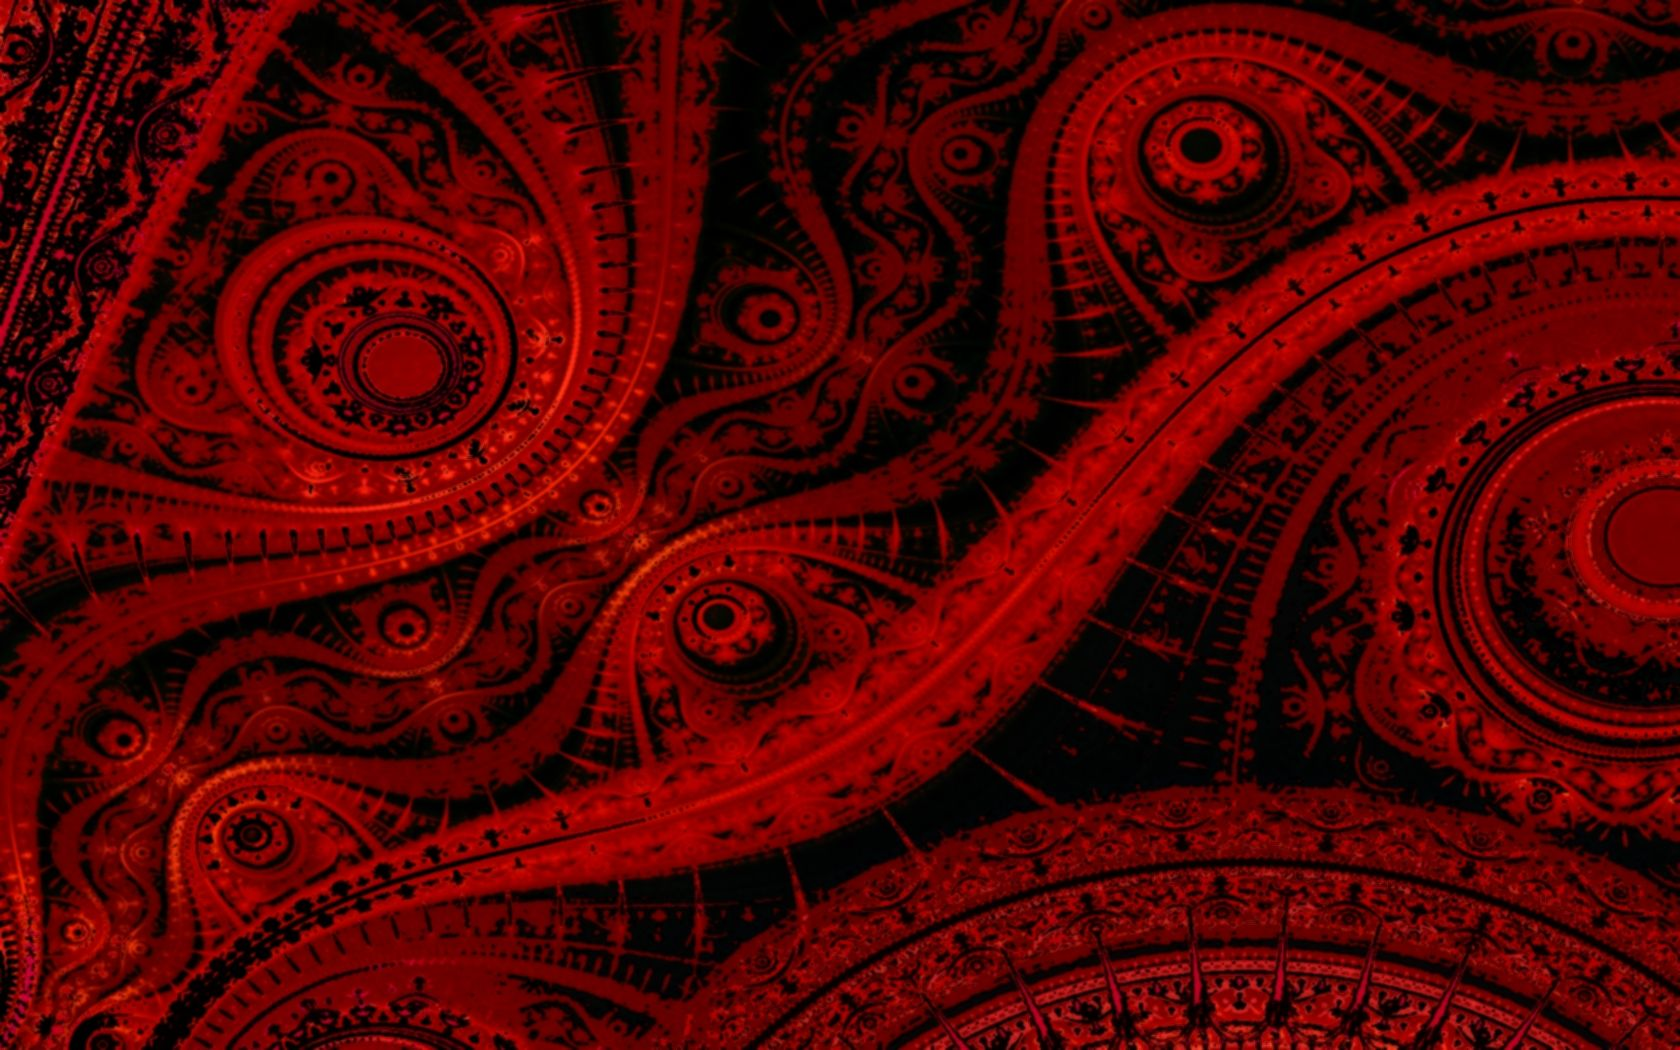 Hd Abstract Wallpapers Red Hd Wallpapers N Red Wallpaper Red